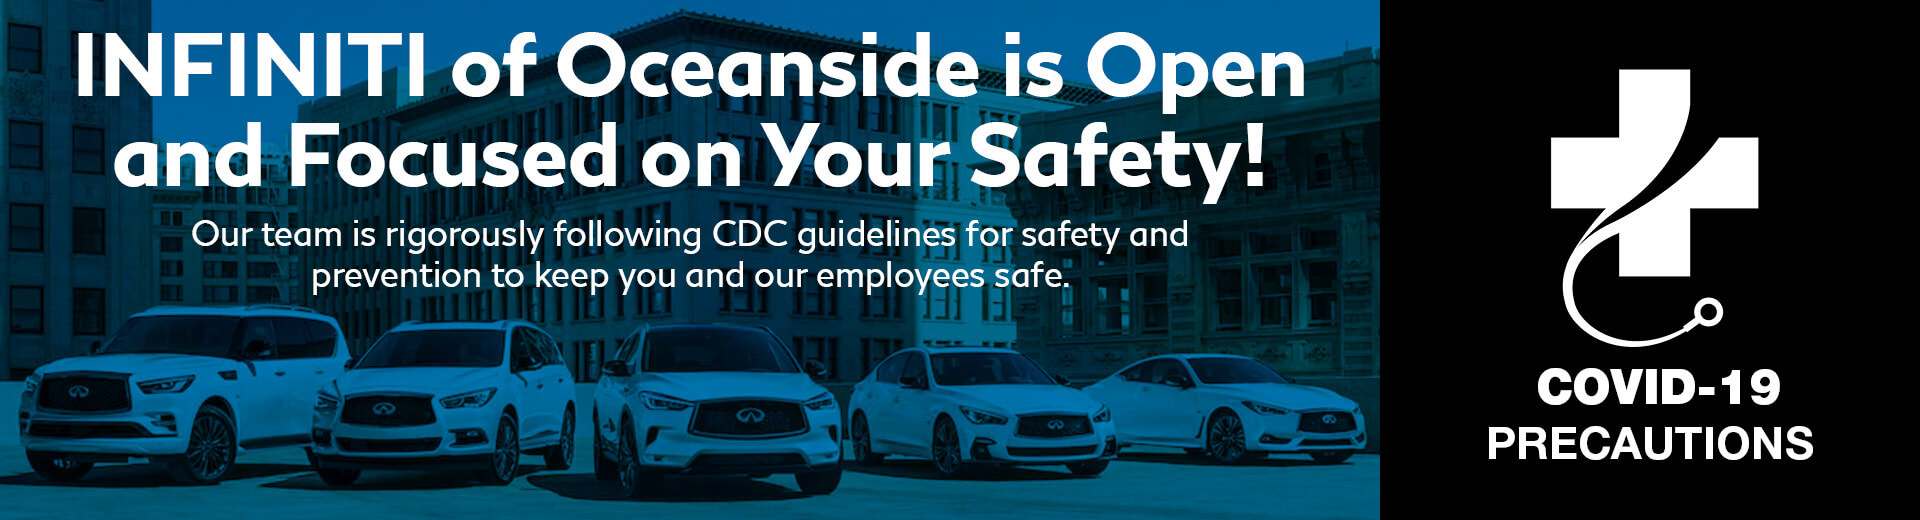 Mossy Nissan is Open and Focused on Your Safety